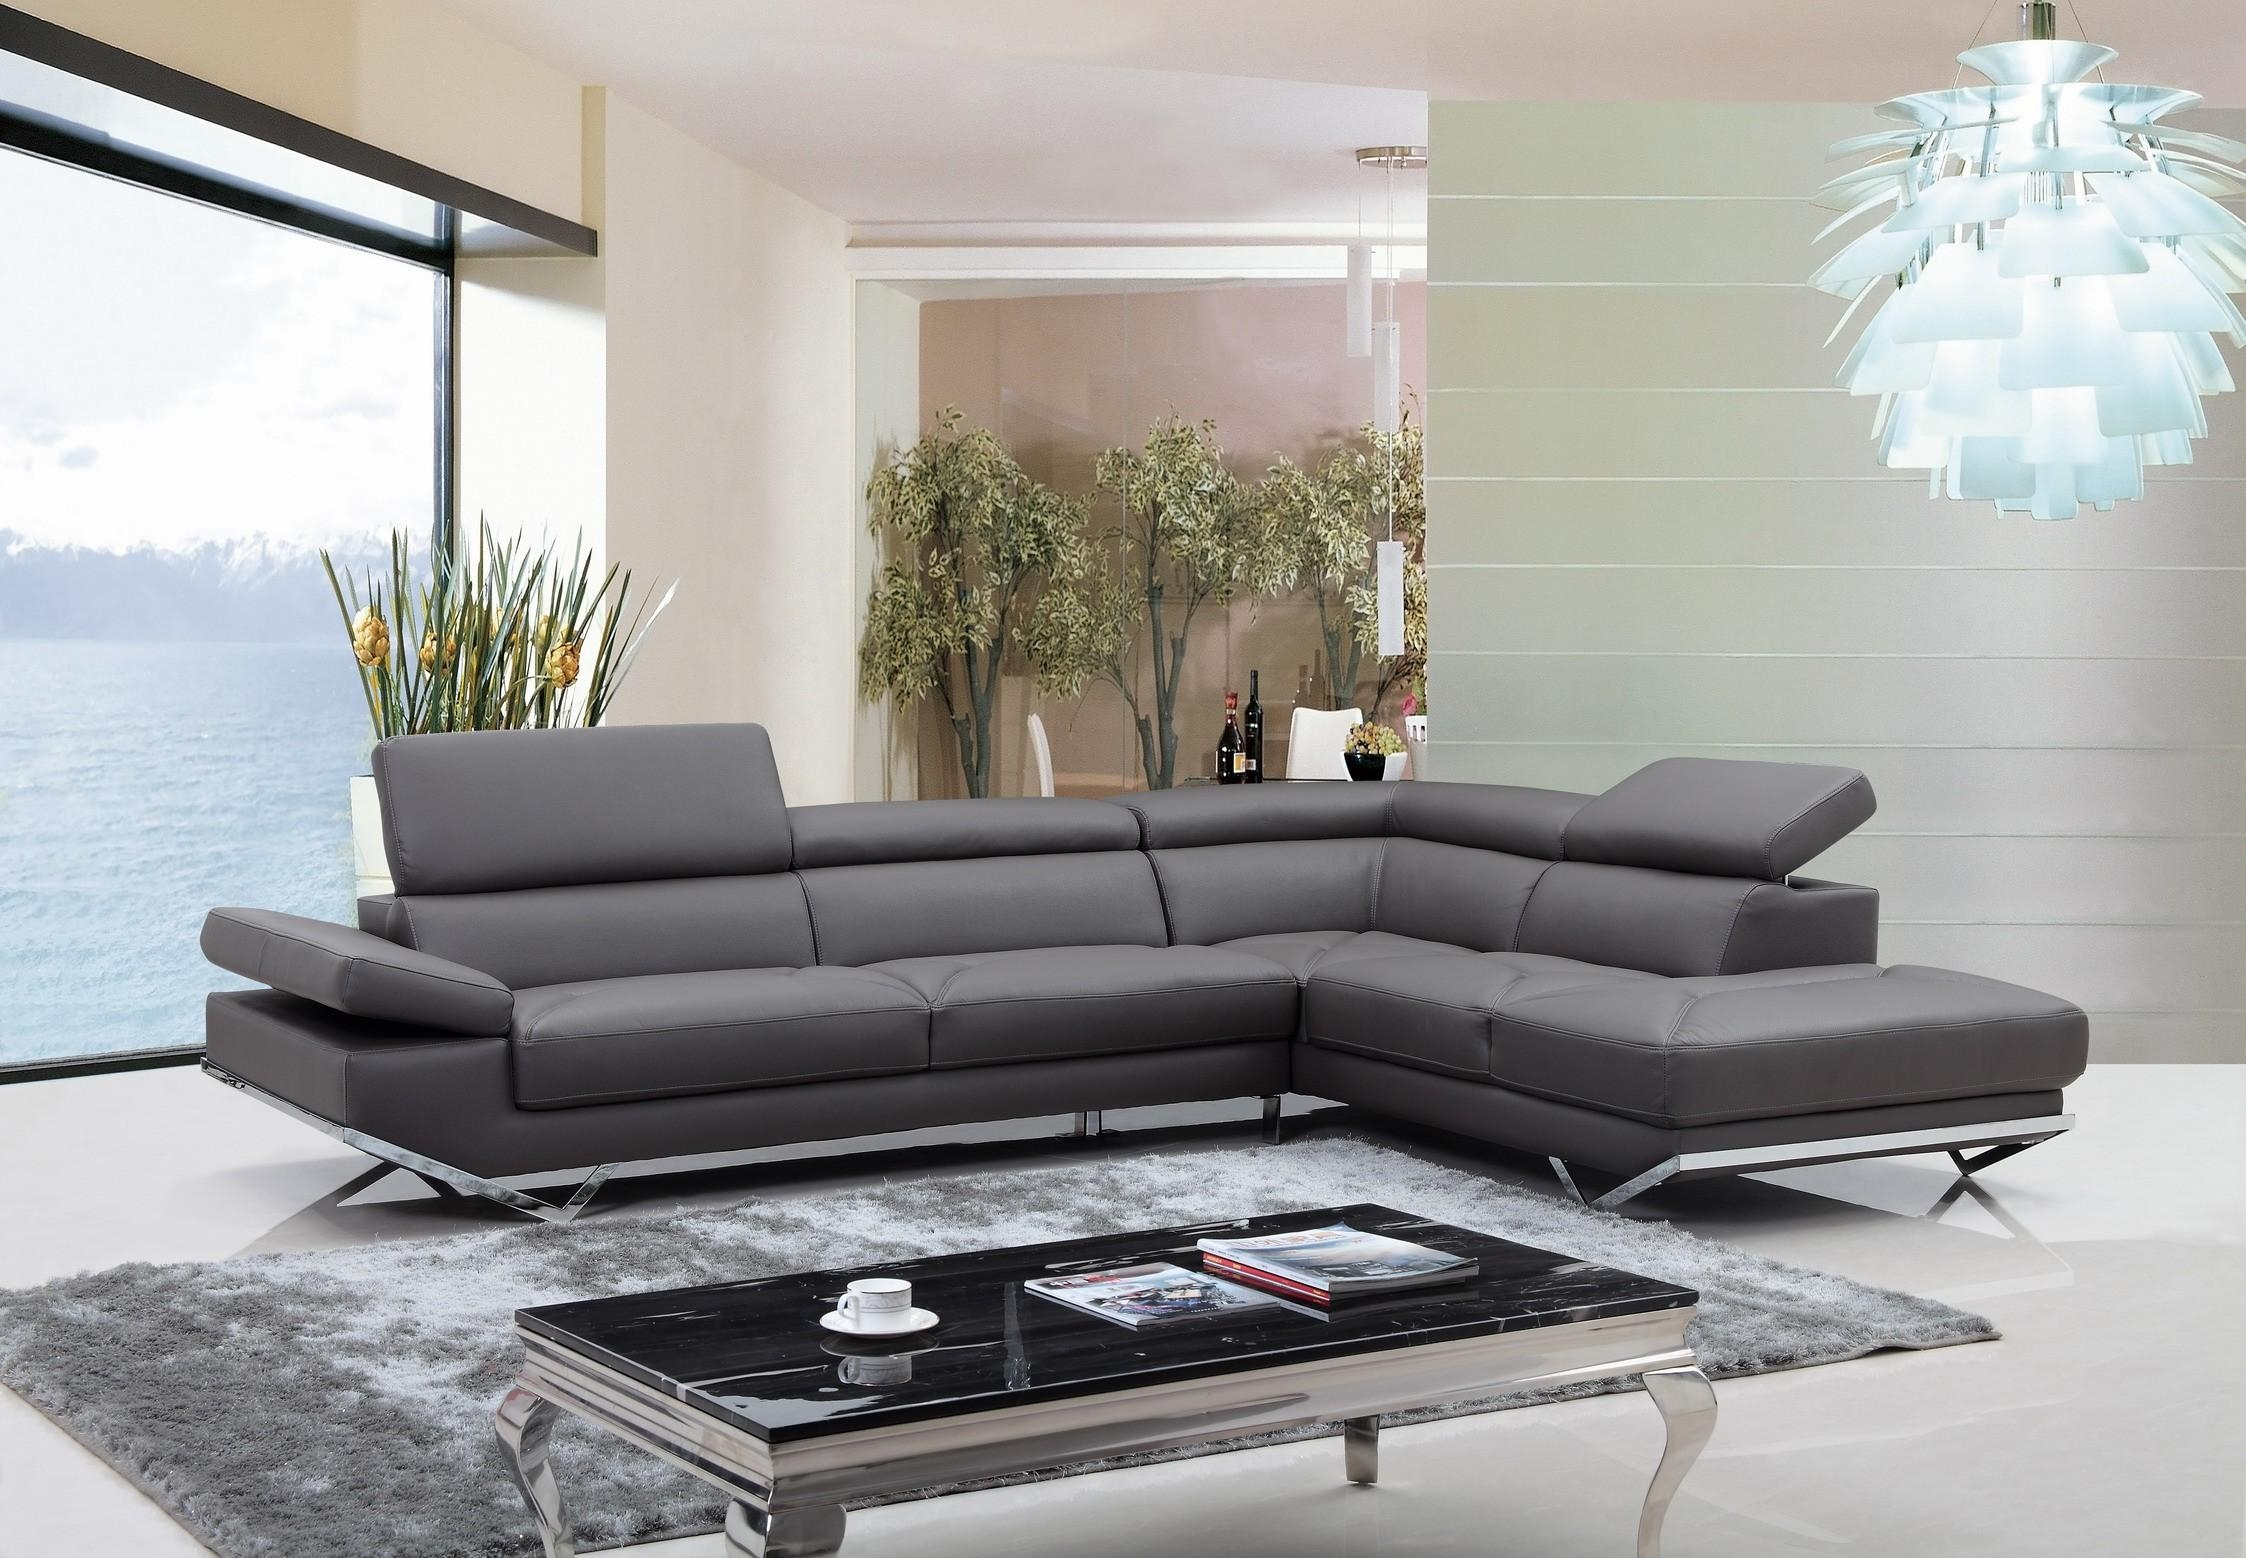 Sofas : Magnificent Modern Leather Chair Cream Leather Sofa Throughout Cream Sectional Leather Sofas (Image 21 of 22)